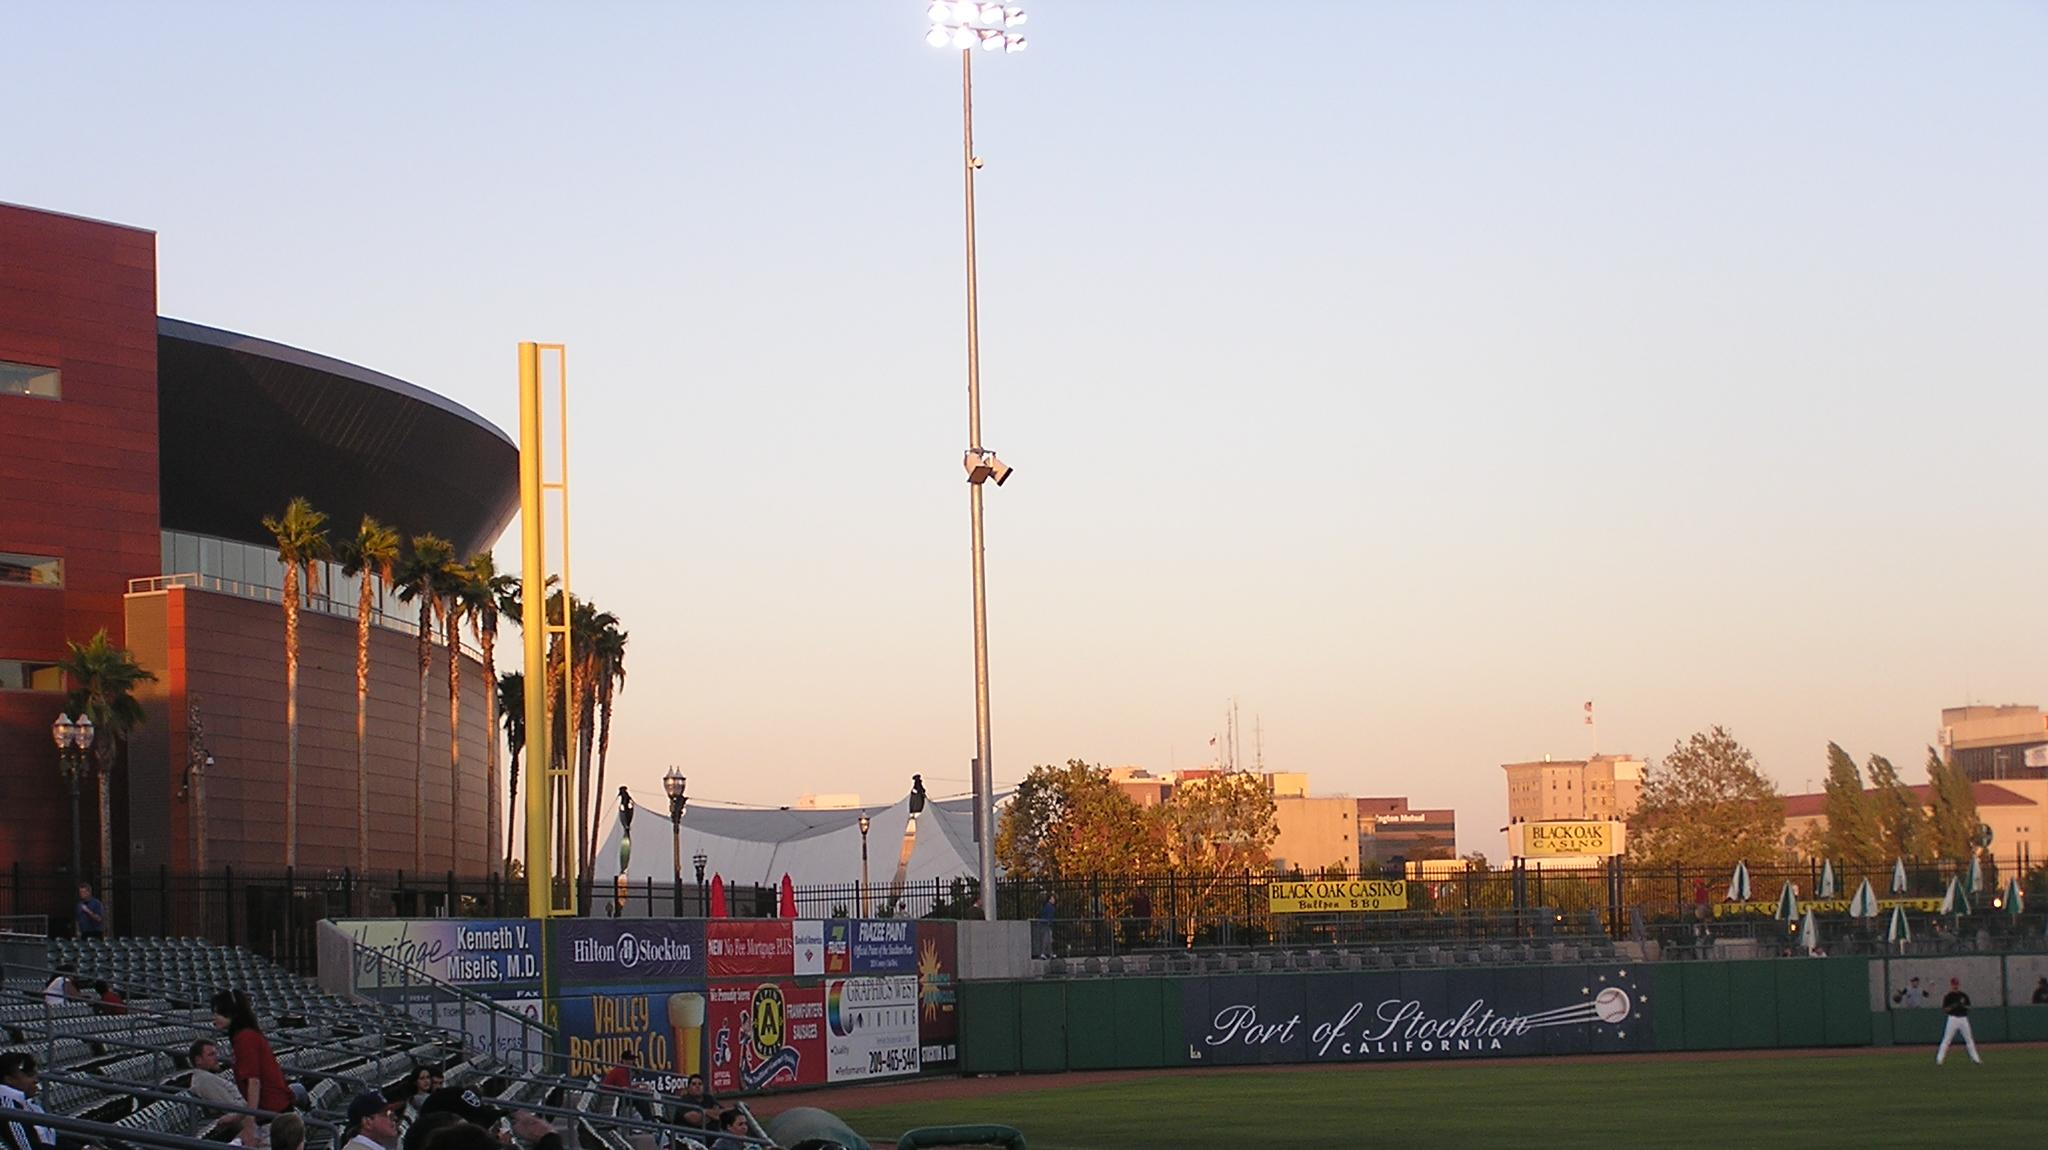 Dusk in Stockton- Banner Island Ballpark